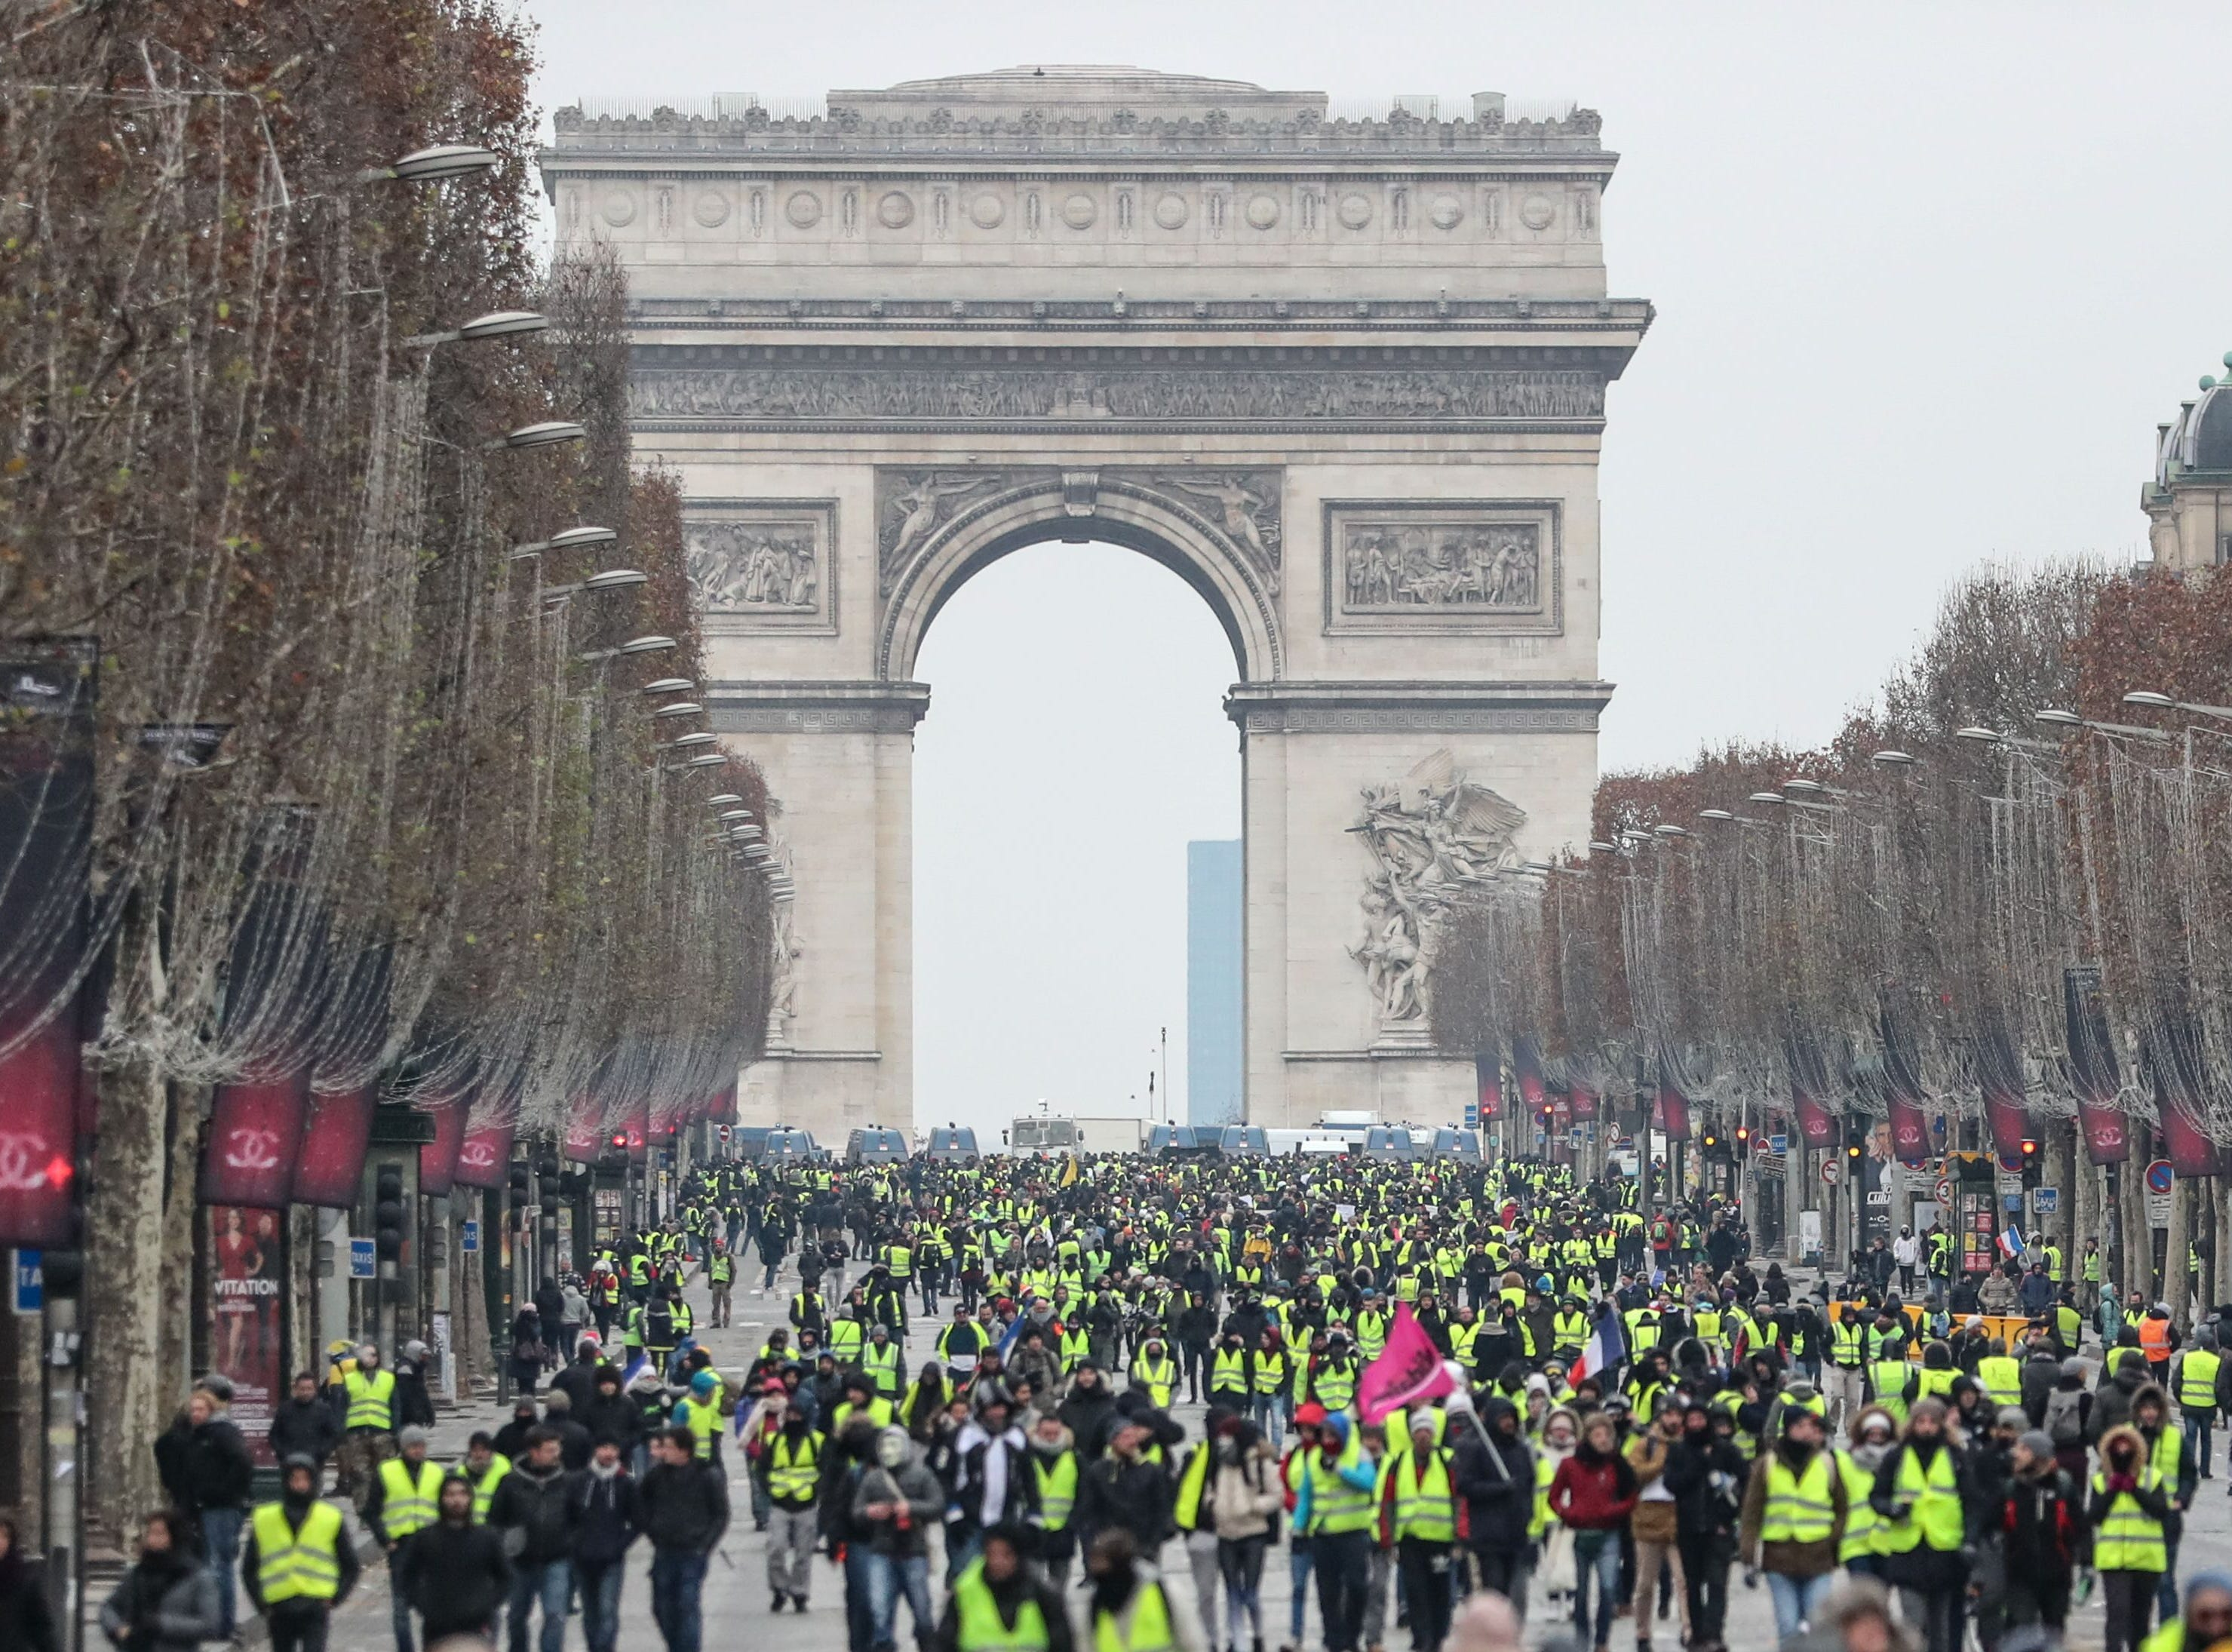 Protesters wearing yellow vests (gilets jaunes) take part in a demonstration on the Champs Elysees Avenue by the Arc de Triomphe in Paris, on Dec. 15, 2018, to protest against rising costs of living they blame on high taxes.